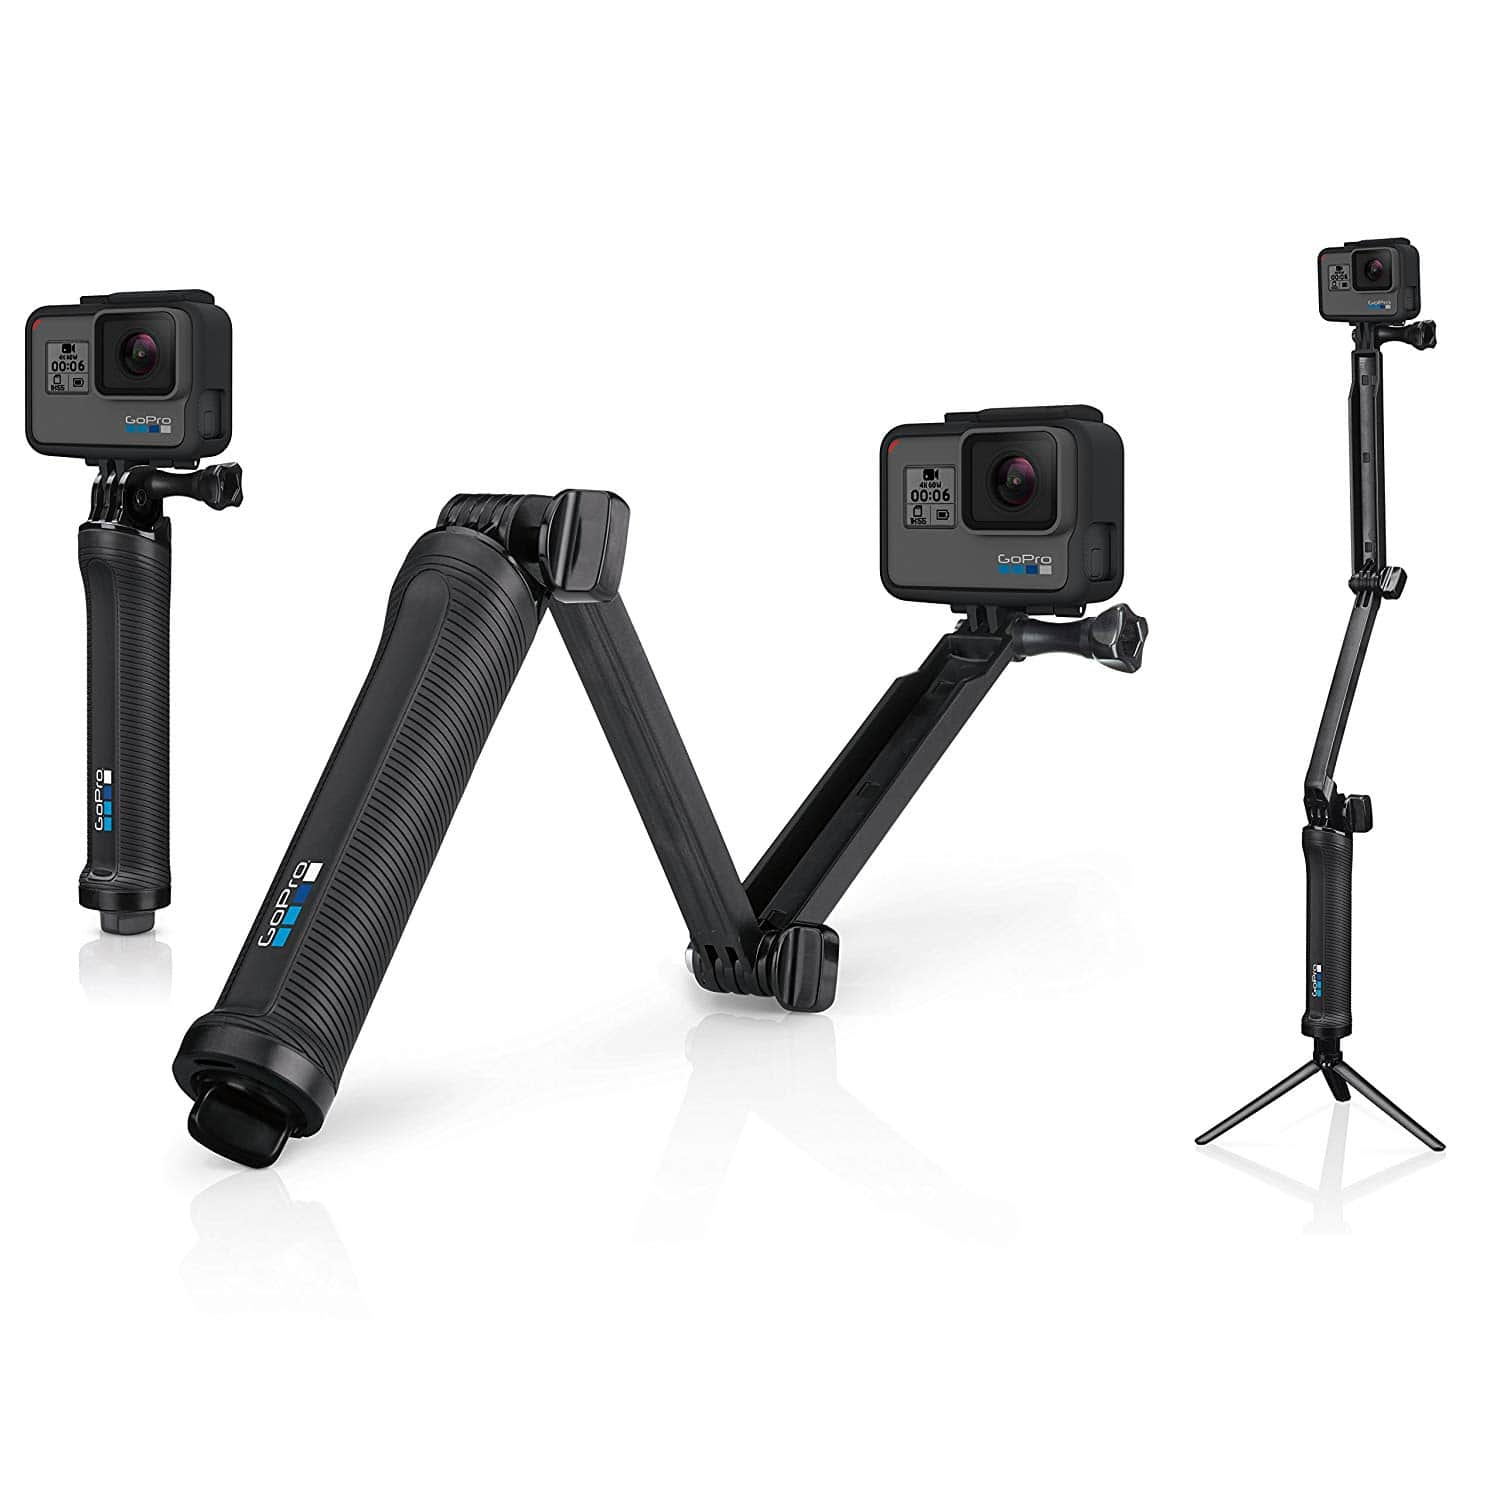 camera grip, folding arm, and tripod for gopro